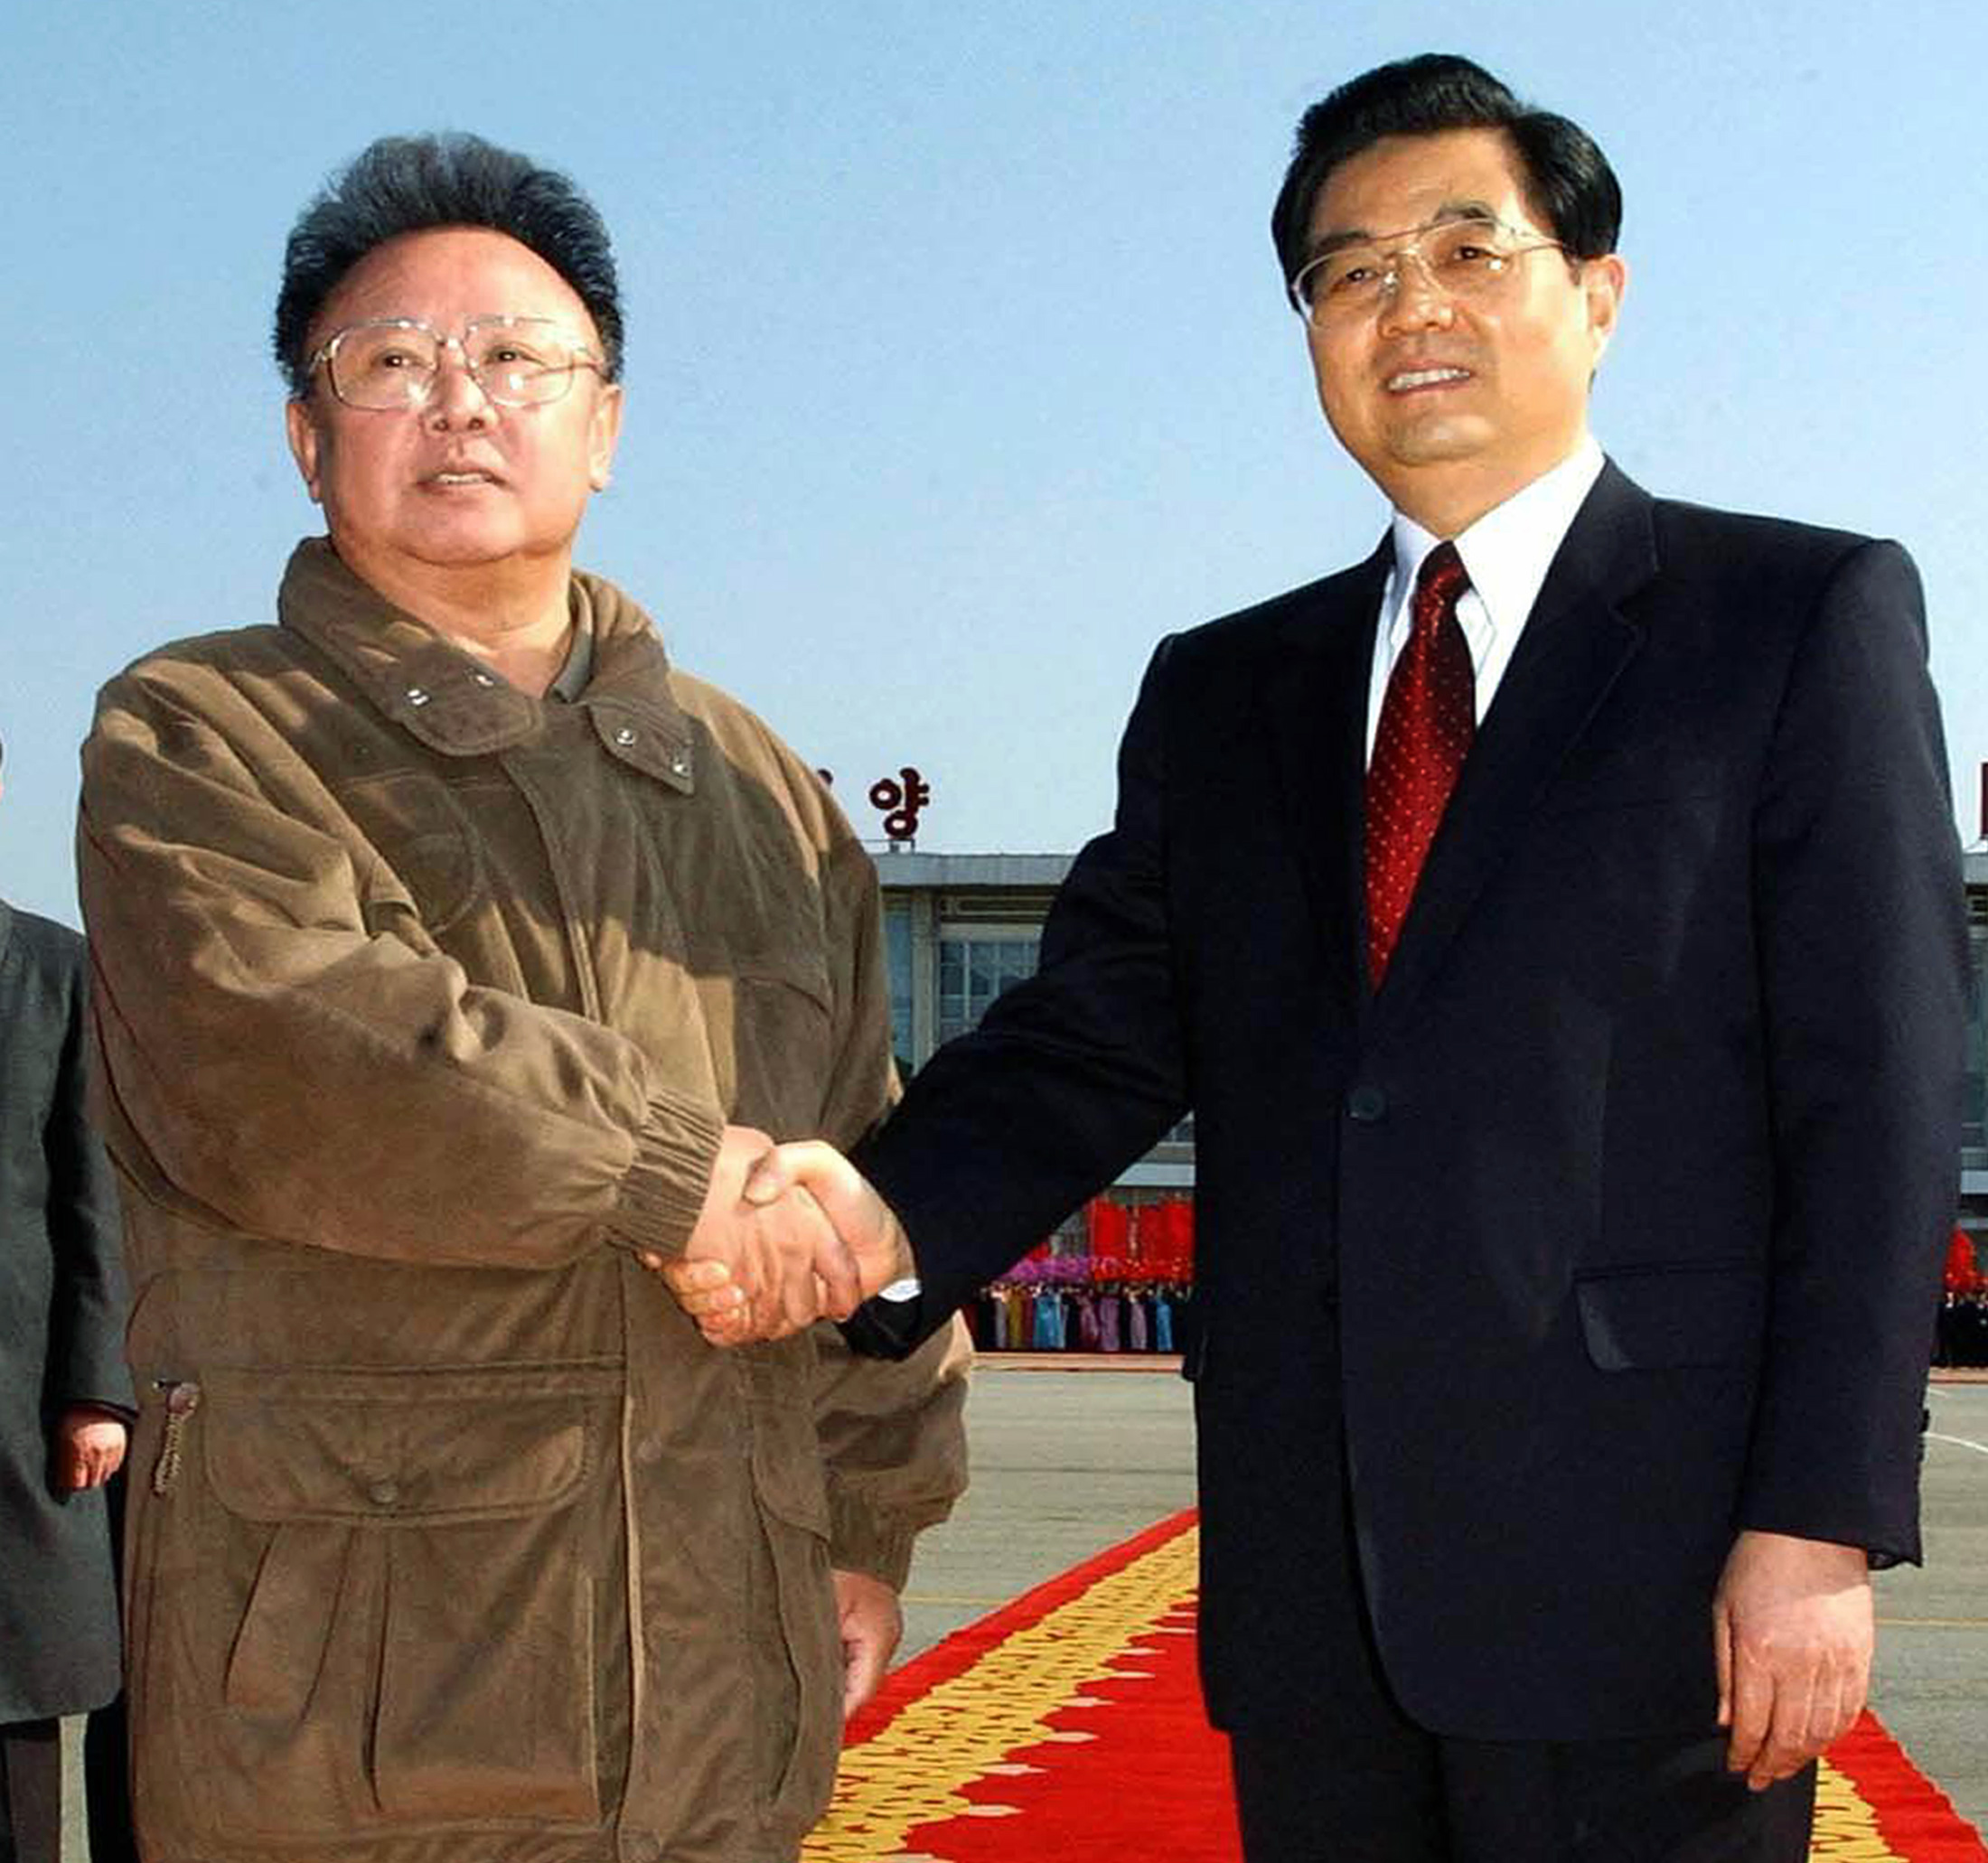 North Korean leader Kim Jong-il (L) shakes hands with Chinese President Hu Jintao as he sees off the Chinese leader on his departure from Pyongyang airport October 30, 2005, in this picture released by Korea News Service in Tokyo October 31, 2005. Hu was concluding an official visit to North Korea. JAPAN OUT REUTERS/Korea News Service - RP2DSFIICSAD